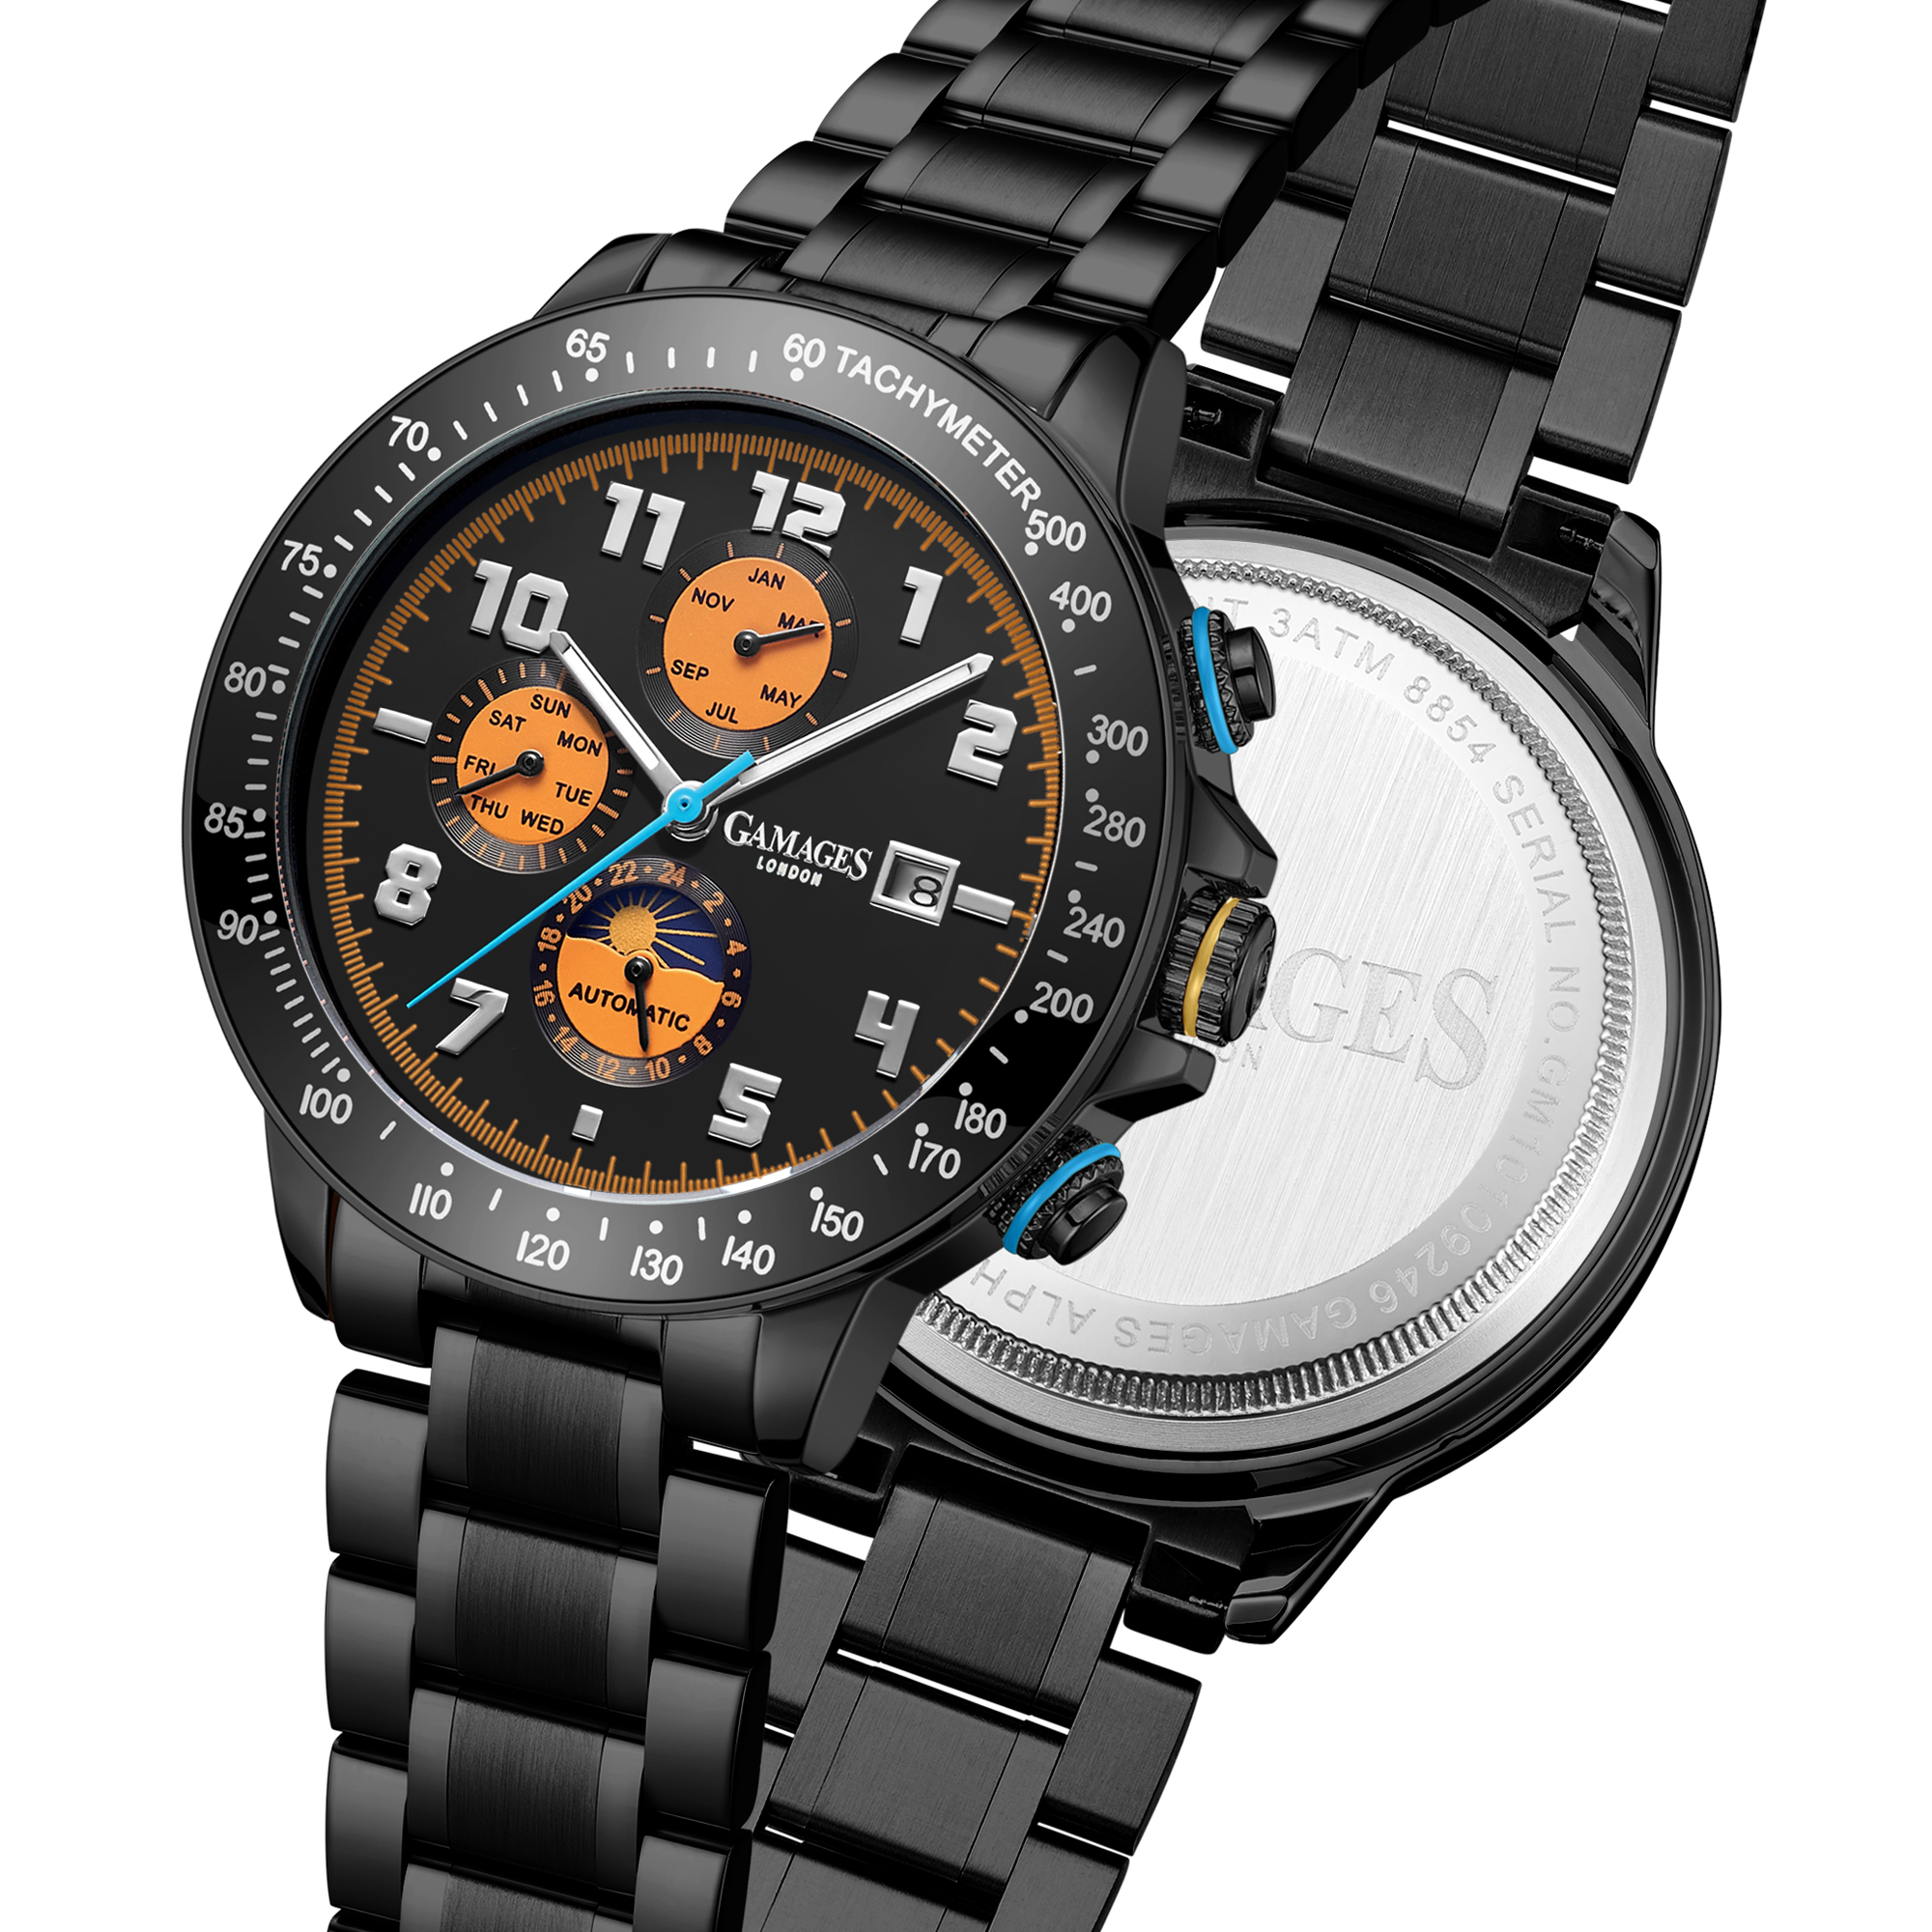 Ltd Edition Hand Assembled Gamages Alpha Automatic Black IP – 5 Year Warranty & Free Delivery - Image 5 of 5